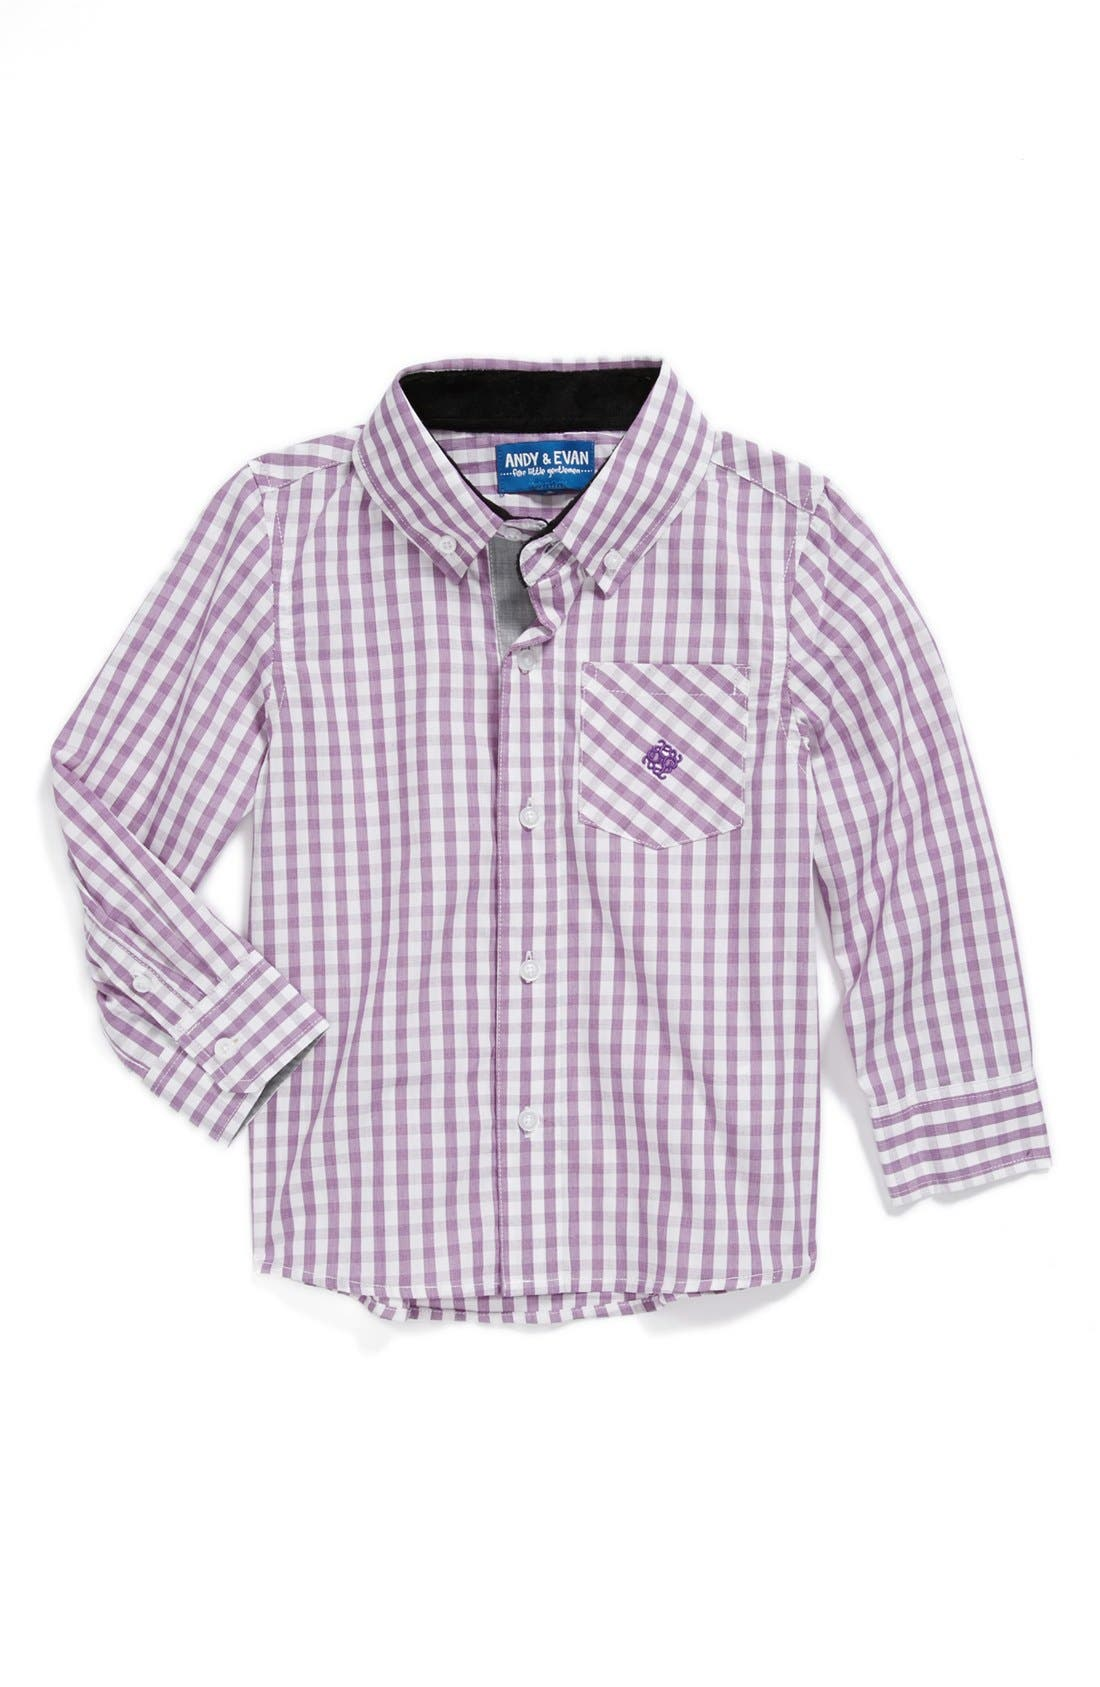 Main Image - Andy & Evan for little gentlemen Woven Sport Shirt (Toddler Boys)